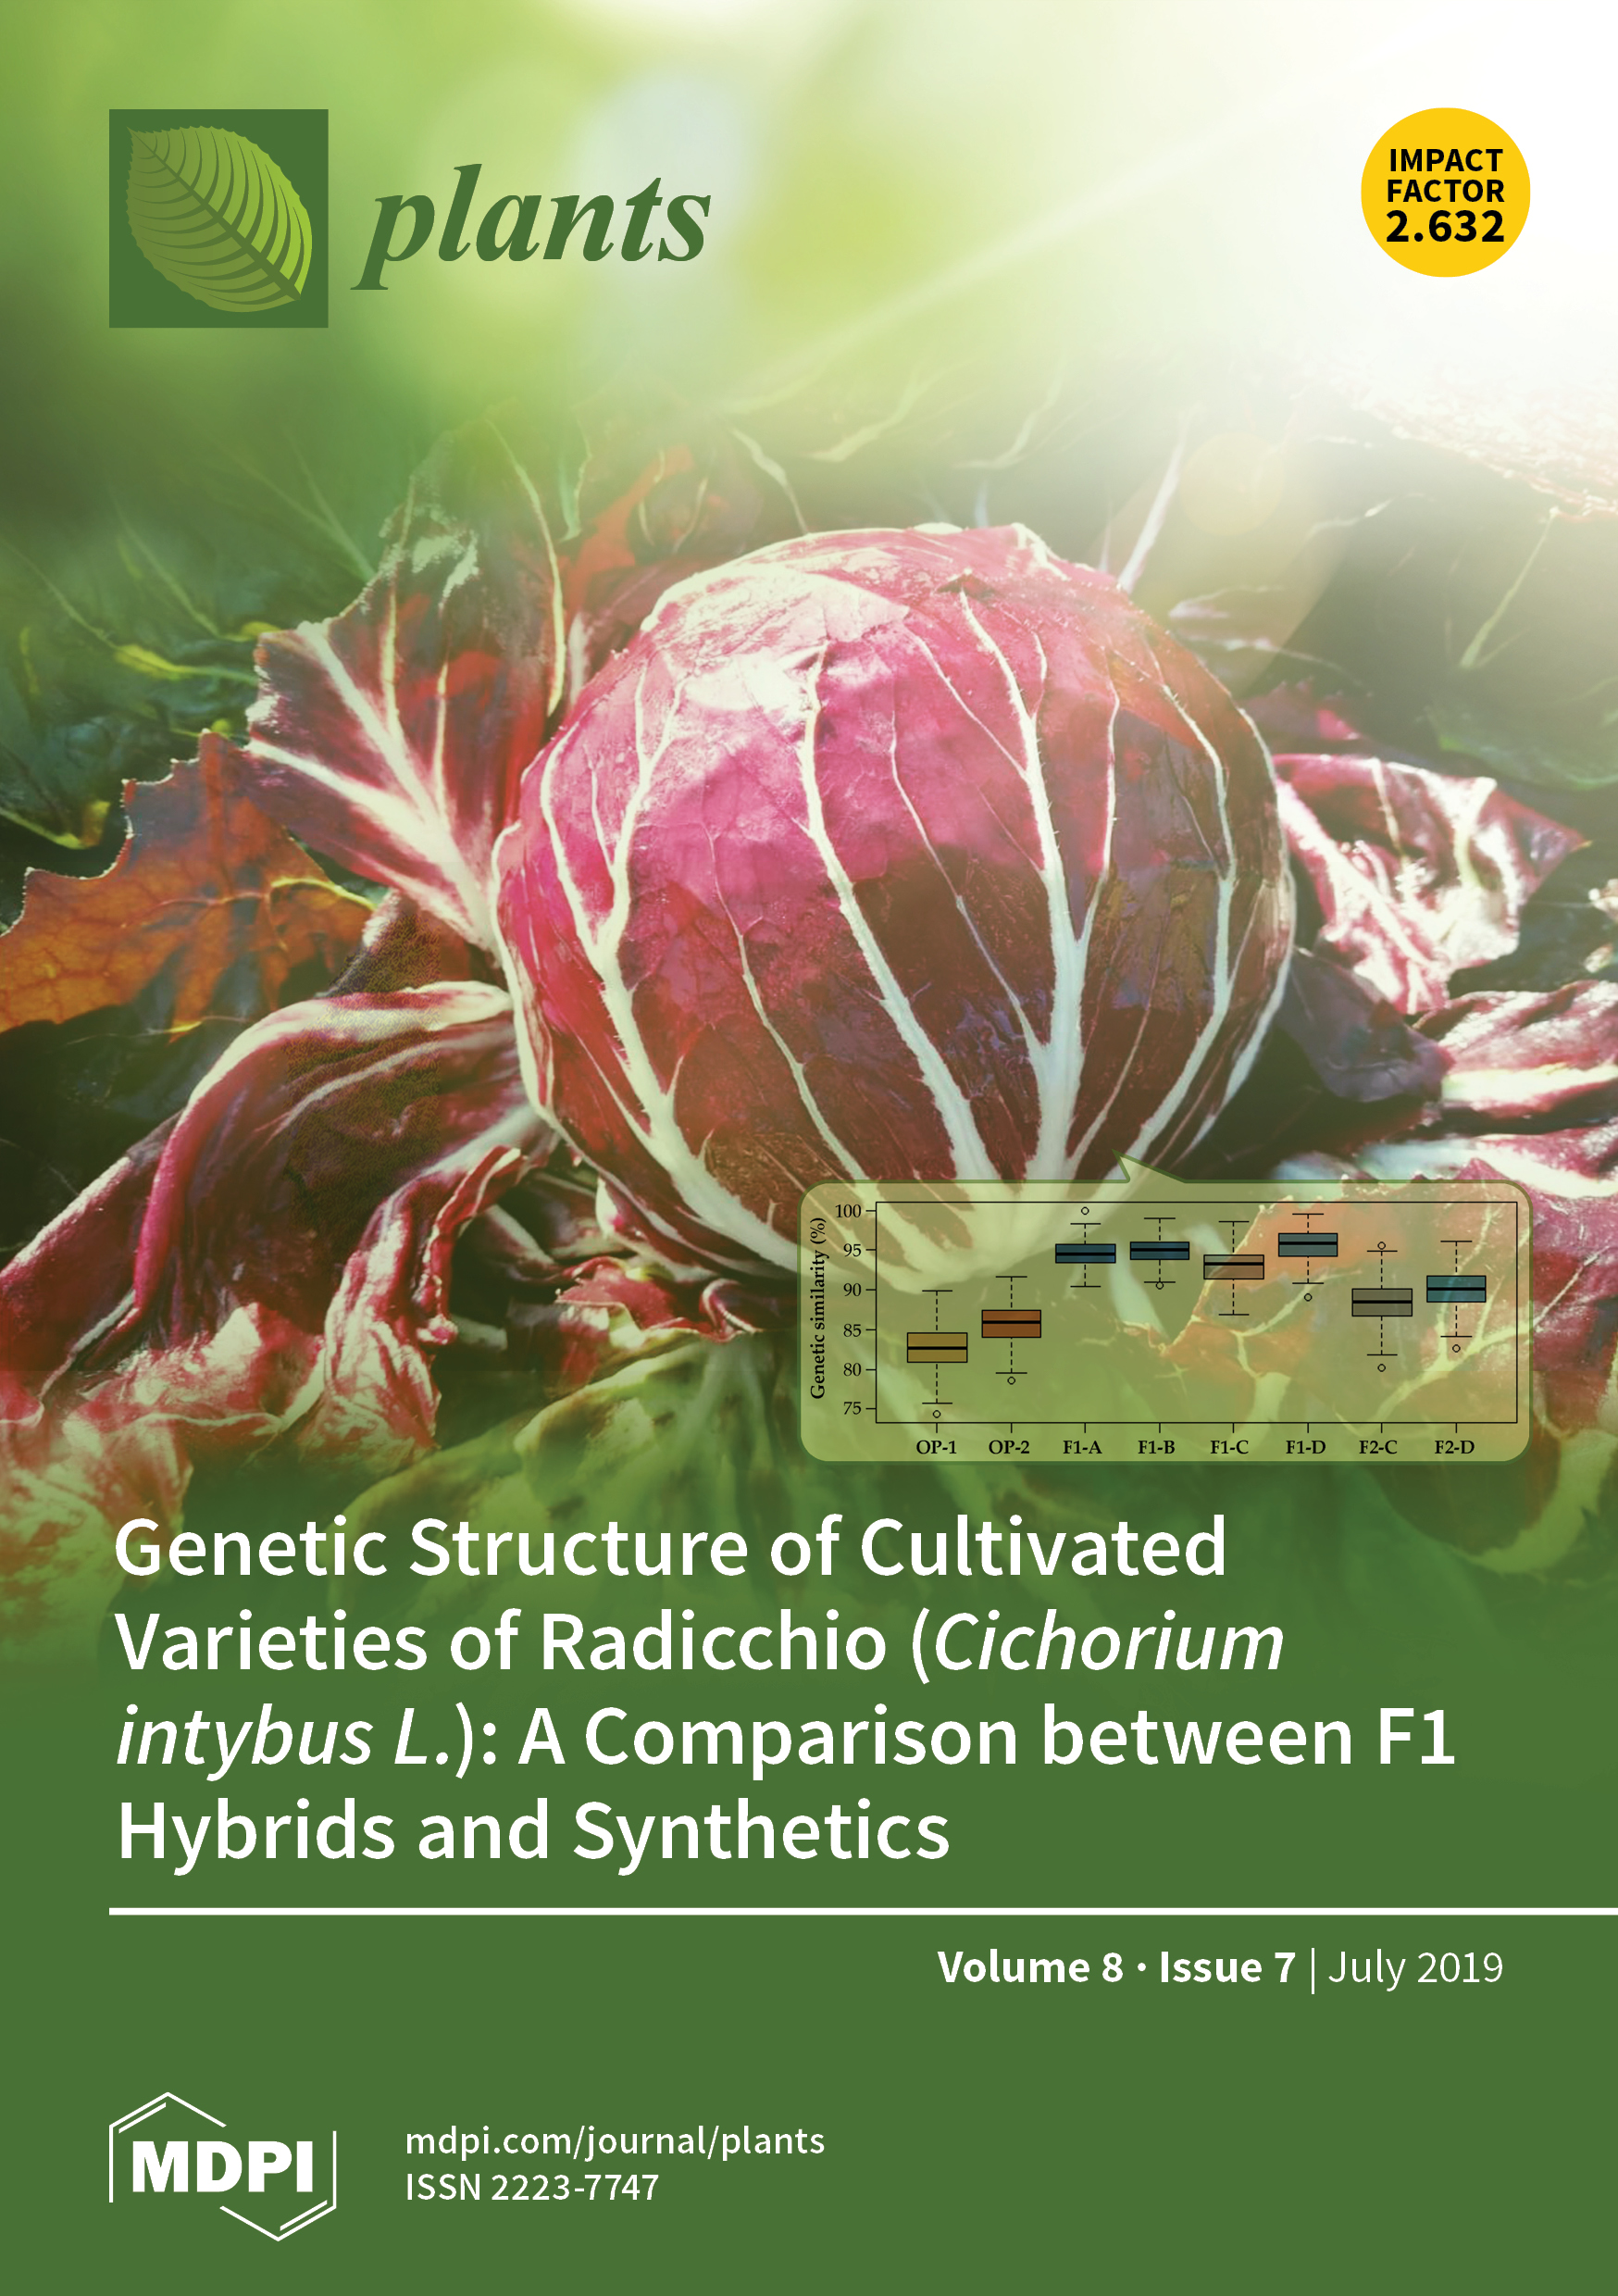 Genetic Structure of Cultivated Varieties of Radicchio (Cichorium intybus L.): A Comparison between F1 Hybrids and Synthetics